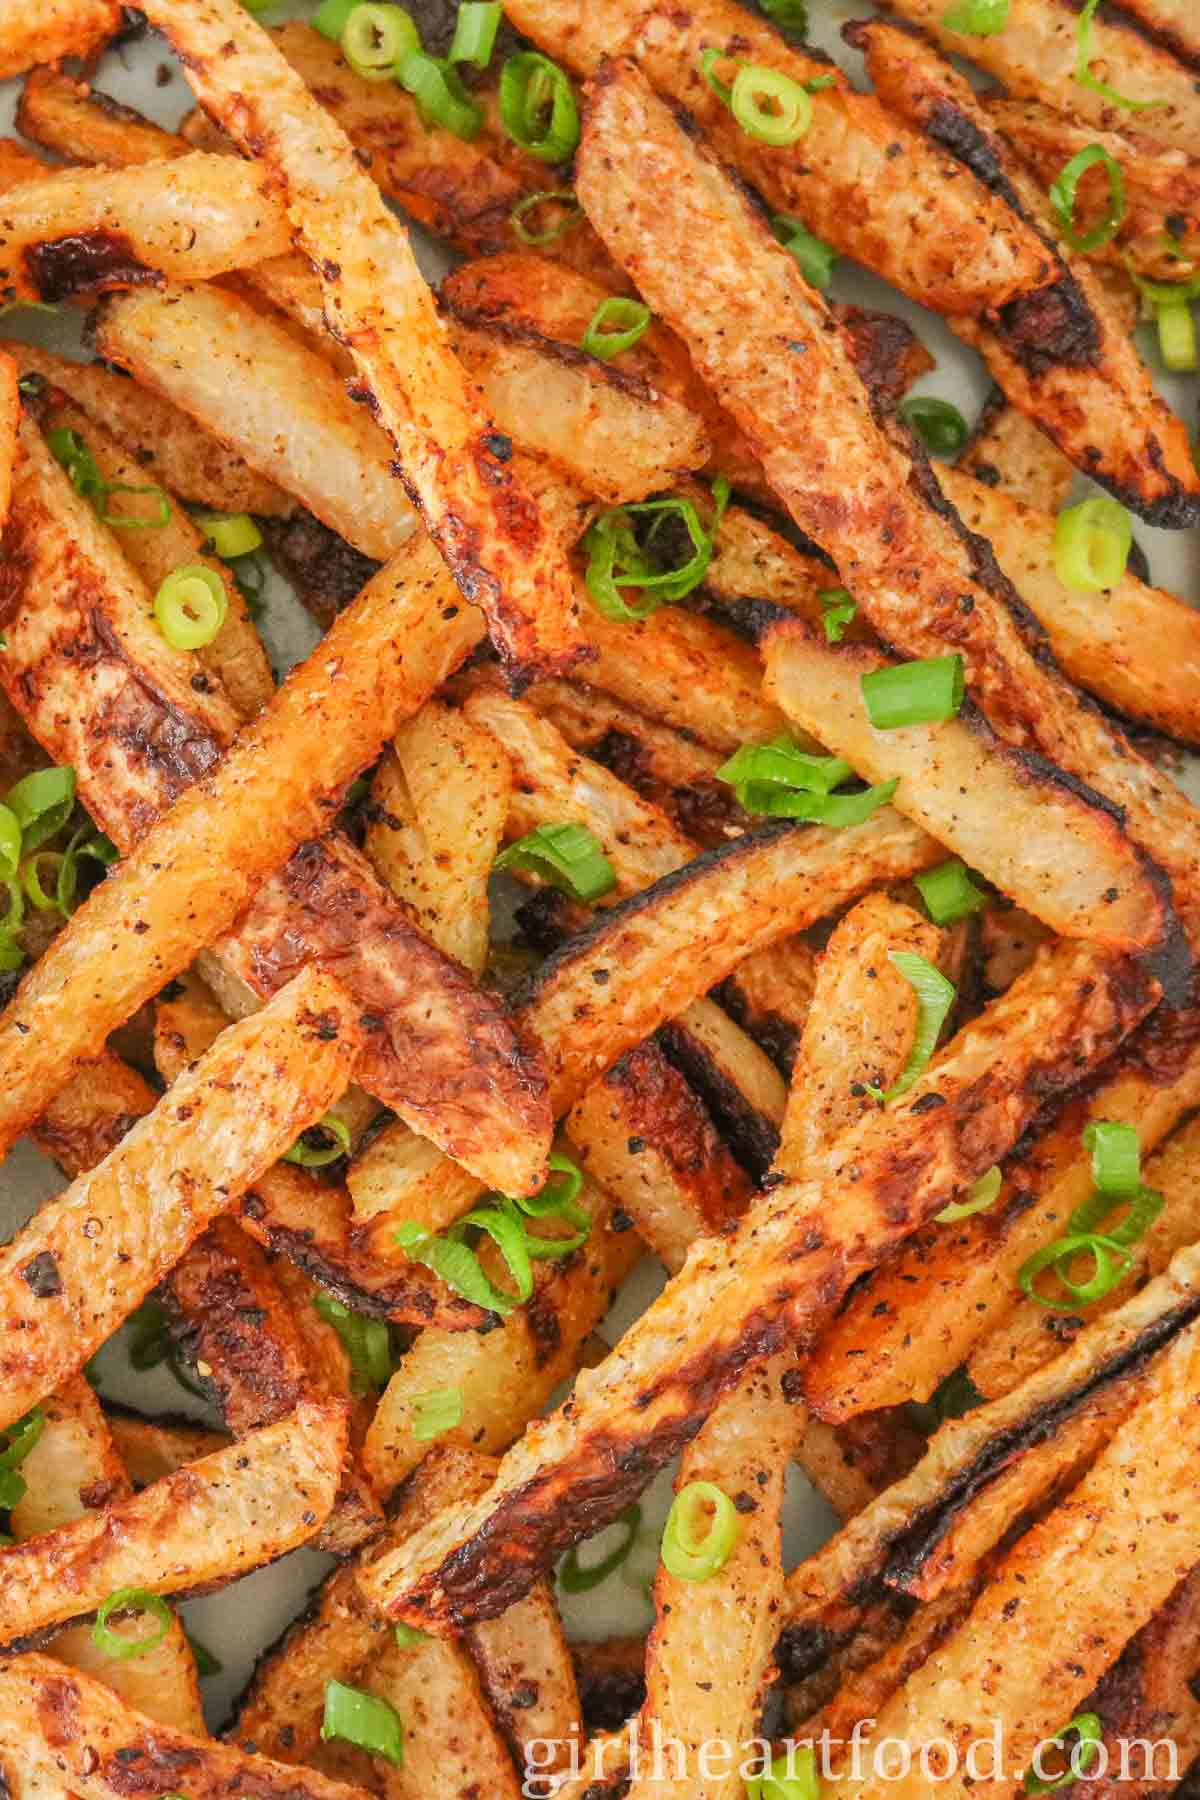 Tight close-up of baked kohlrabi fries garnished with green onion.